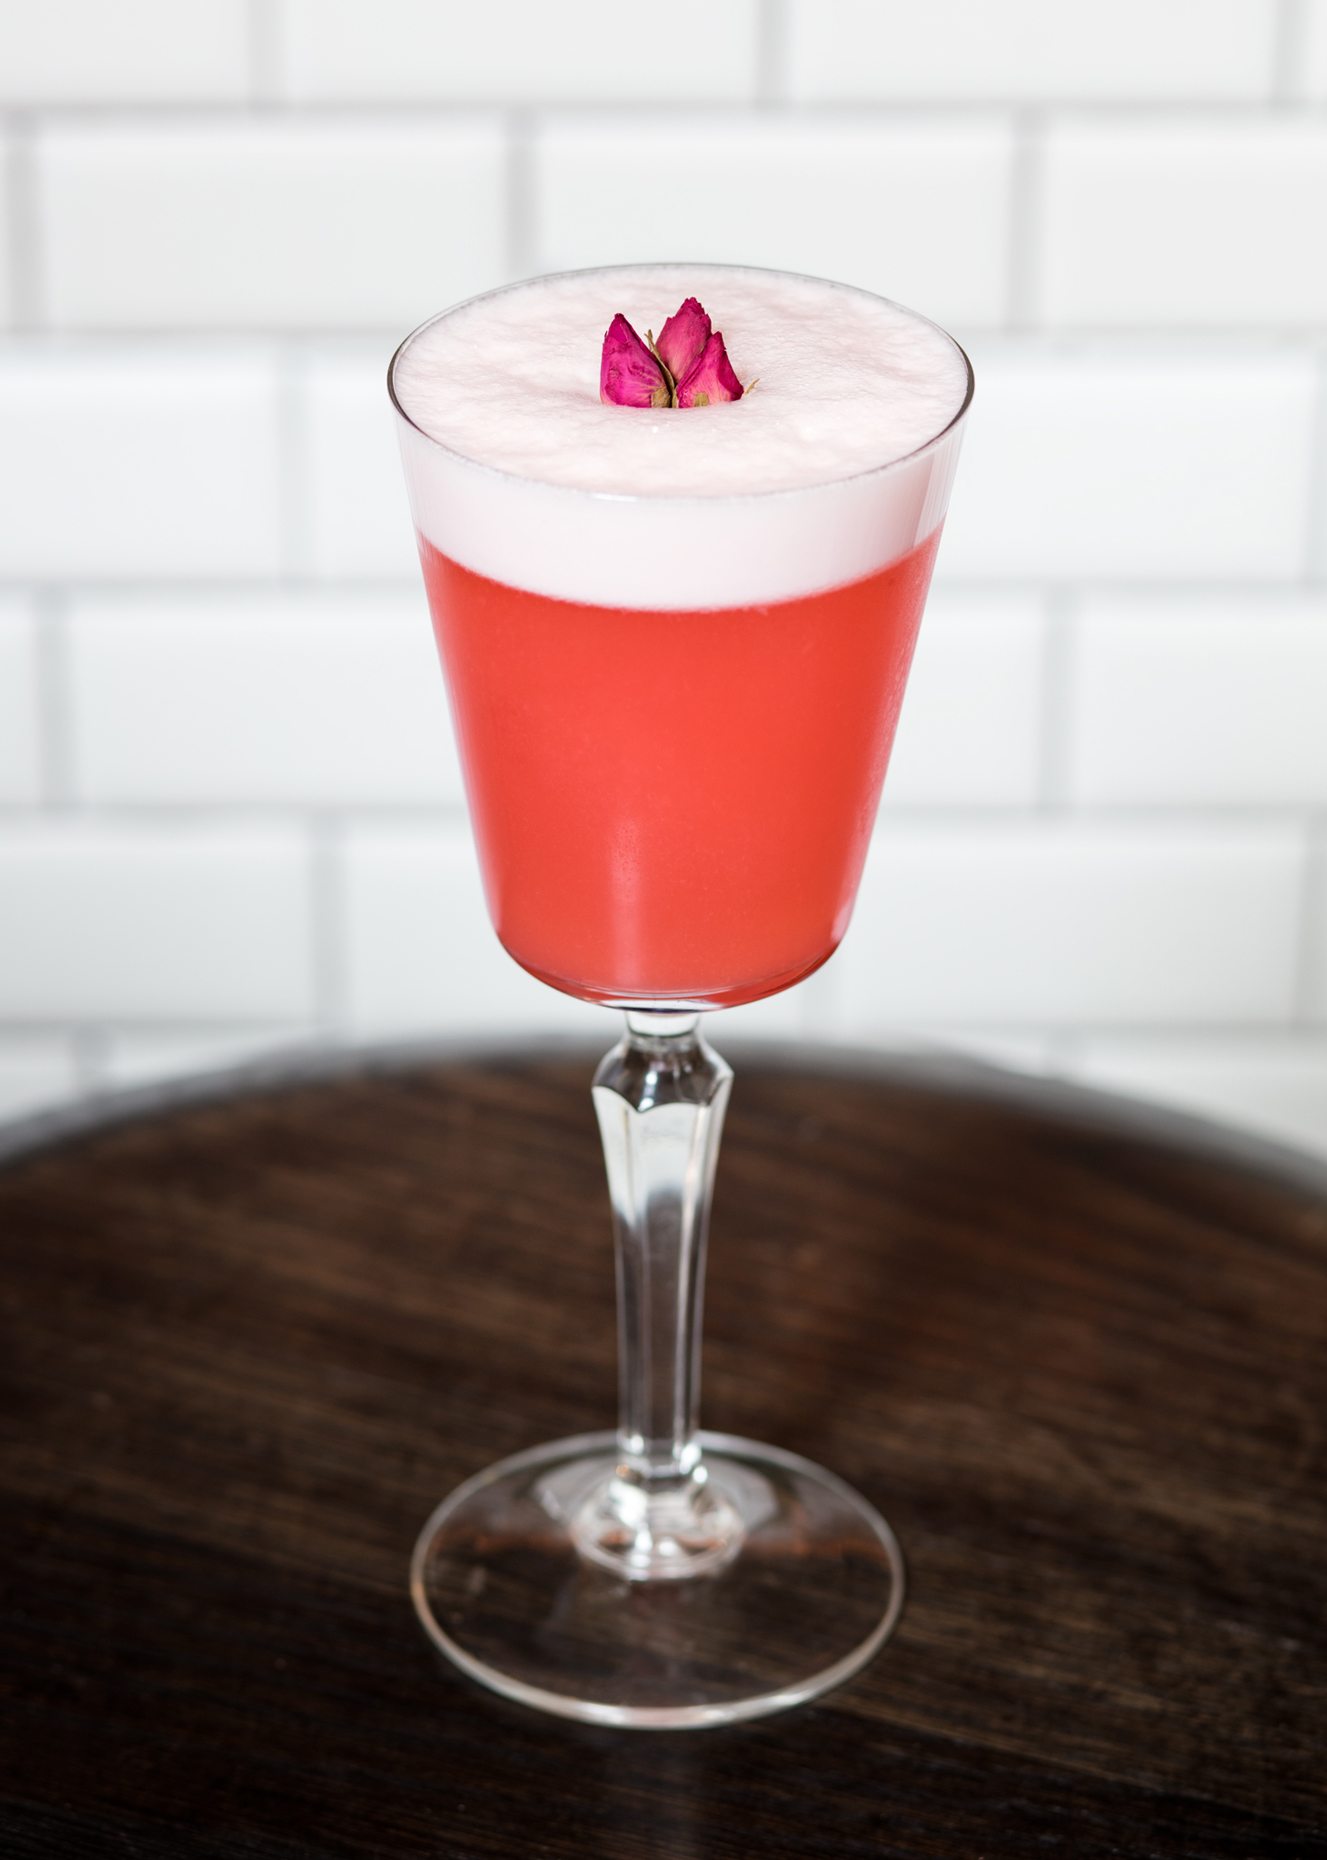 Italiano Sour With Rose Garnish